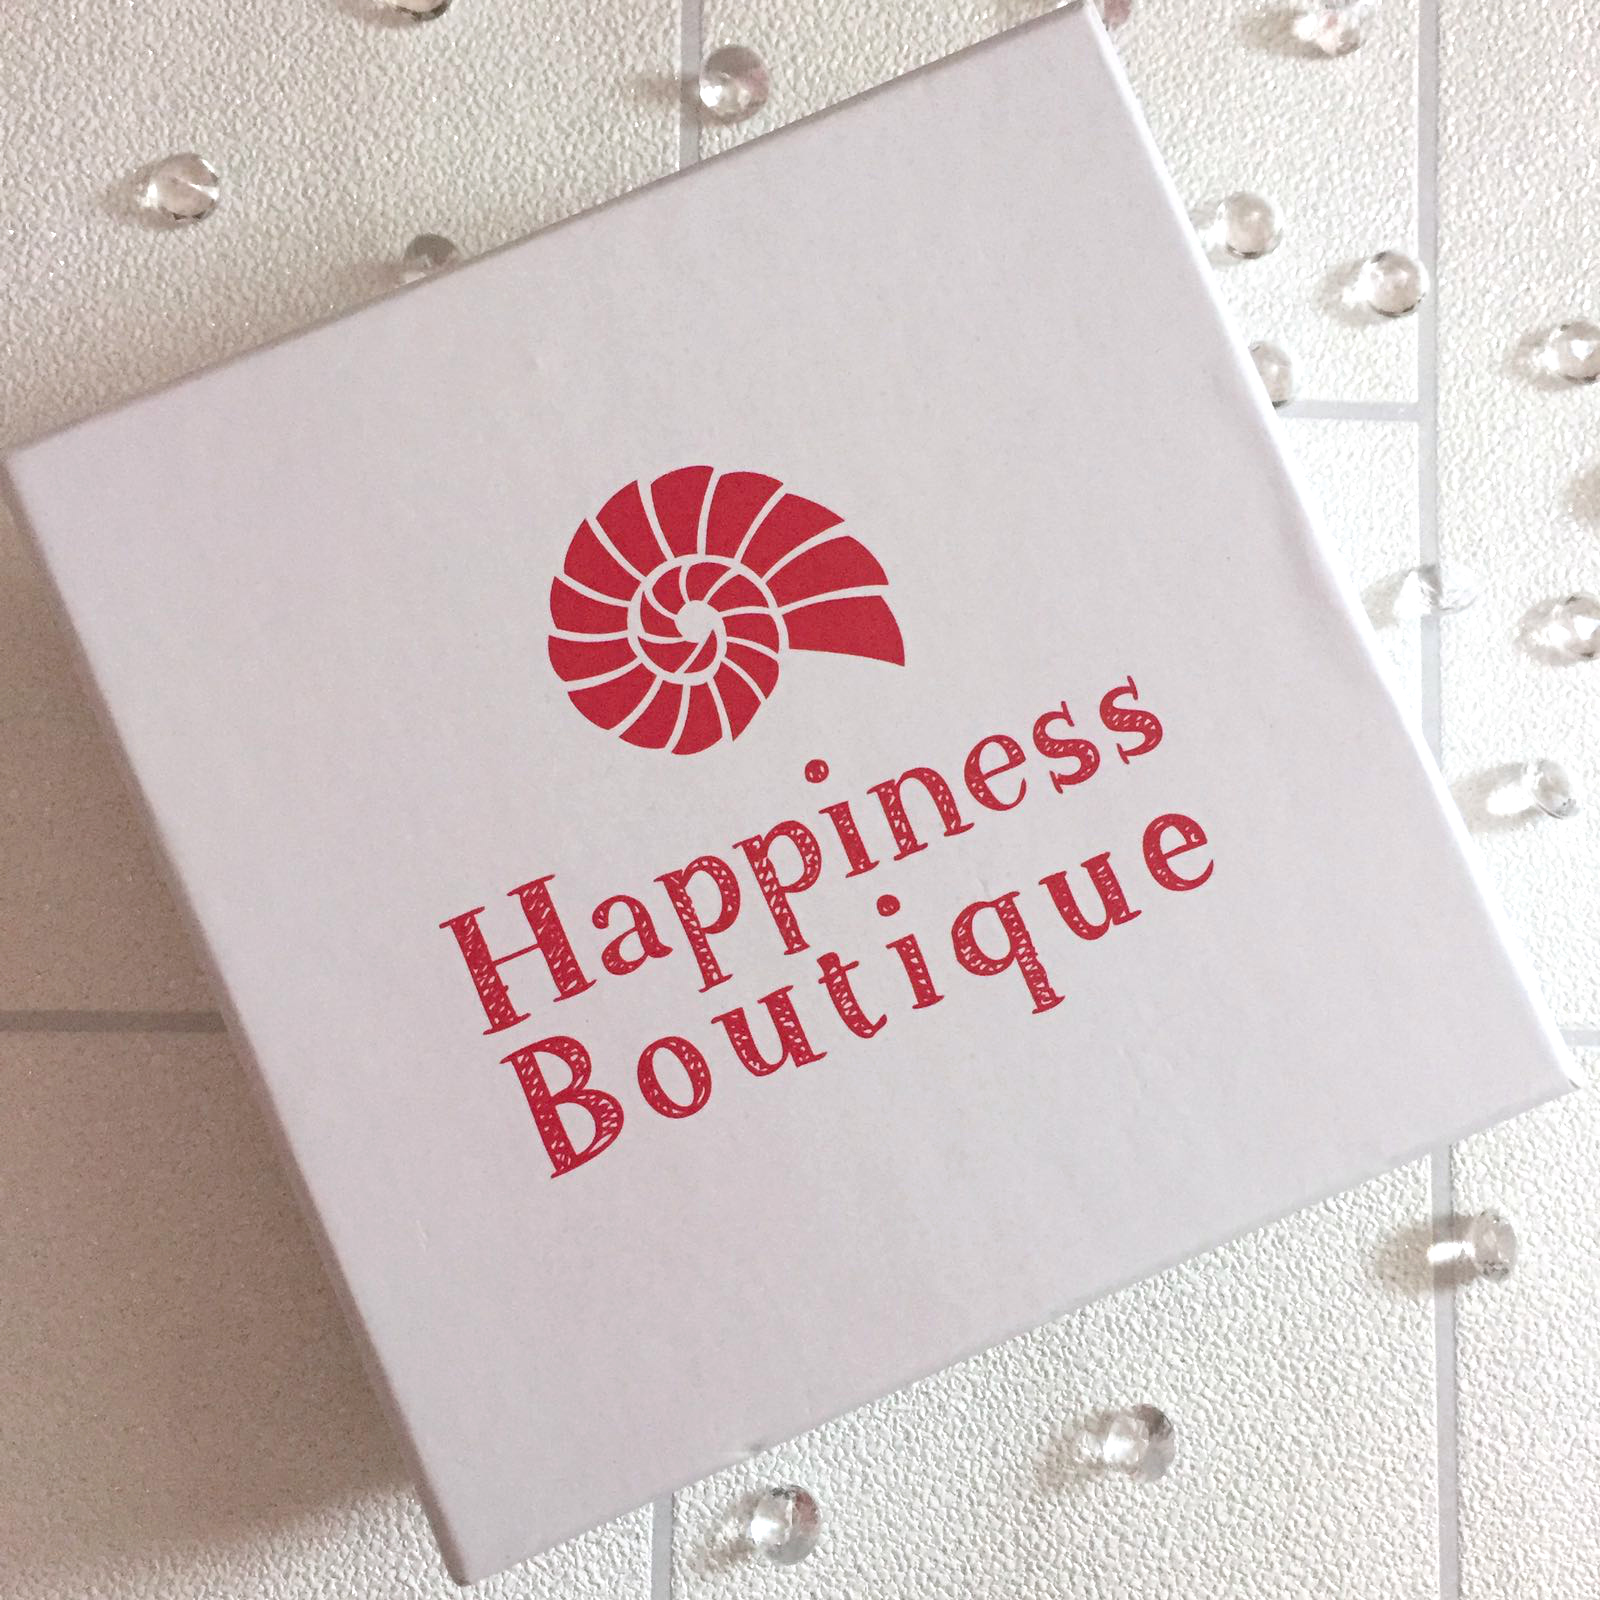 A Christmas Gift Idea From Happiness Boutique And A Discount Code ...